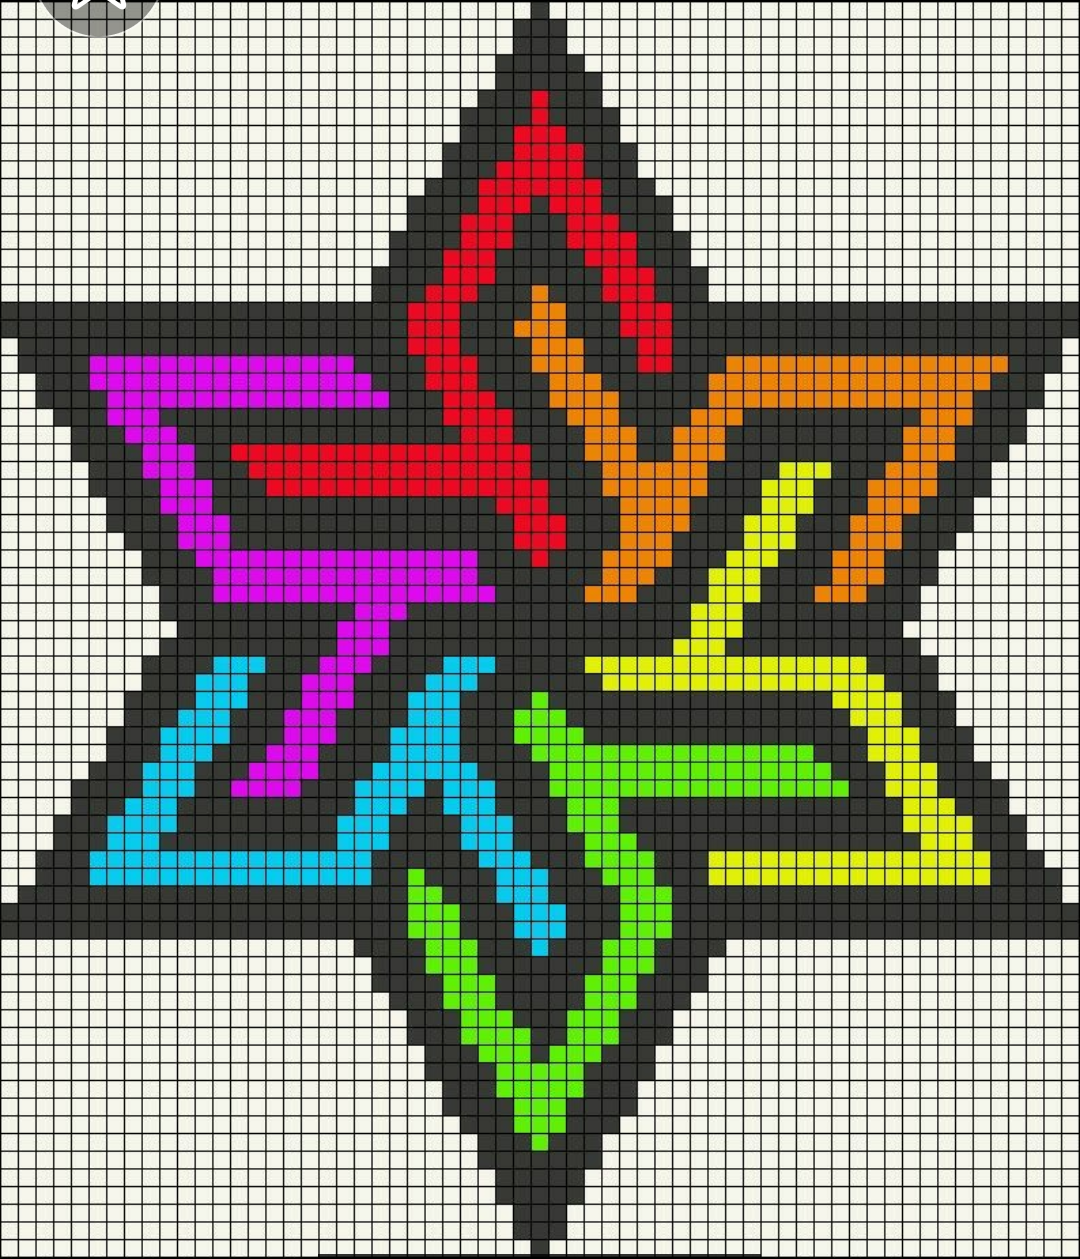 Pin En Pixel Art I Want To Make In Excel Spreadsheets